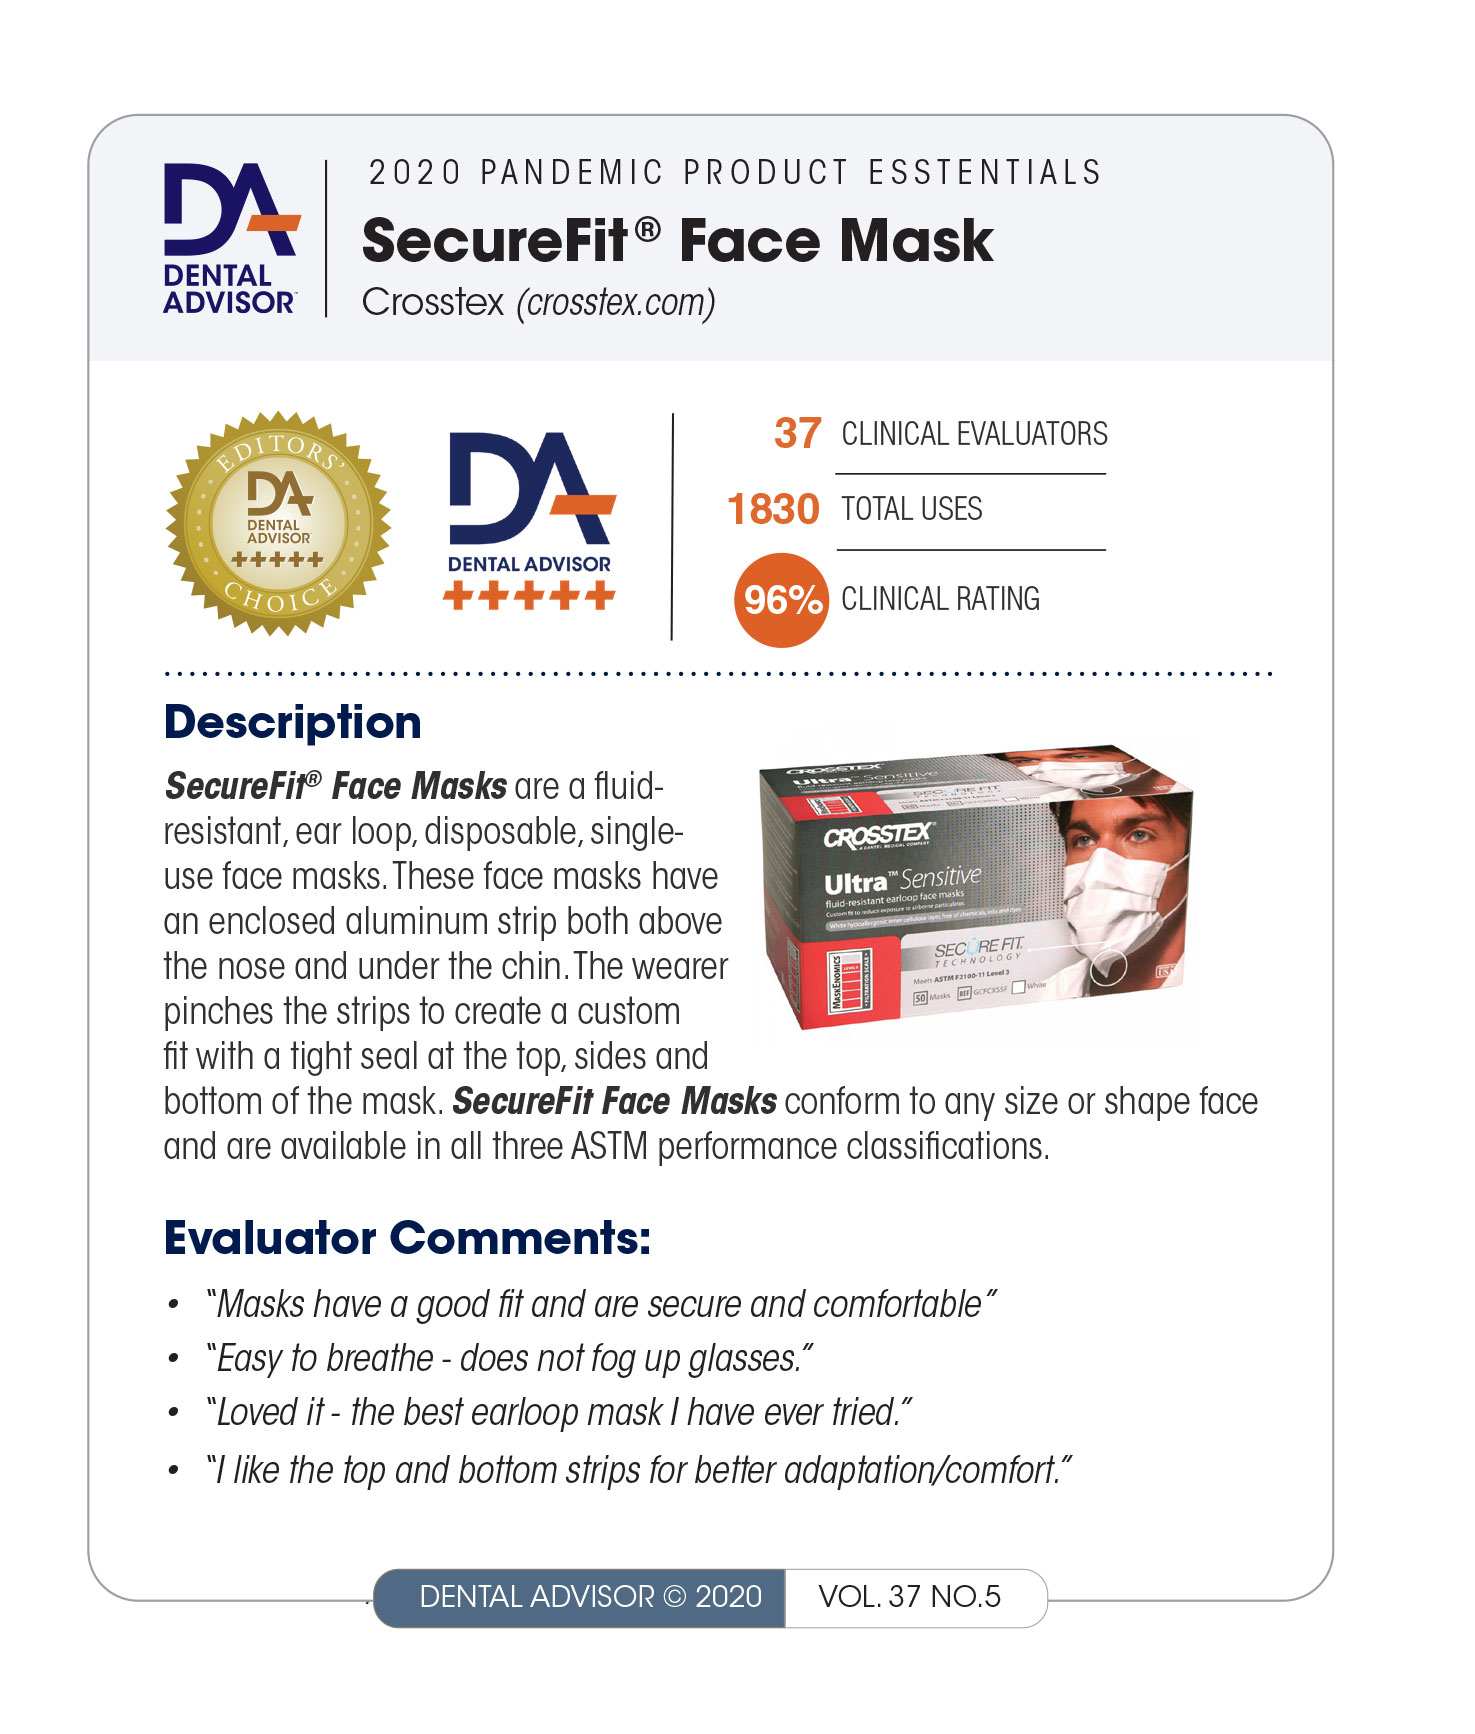 SecureFit-Mask